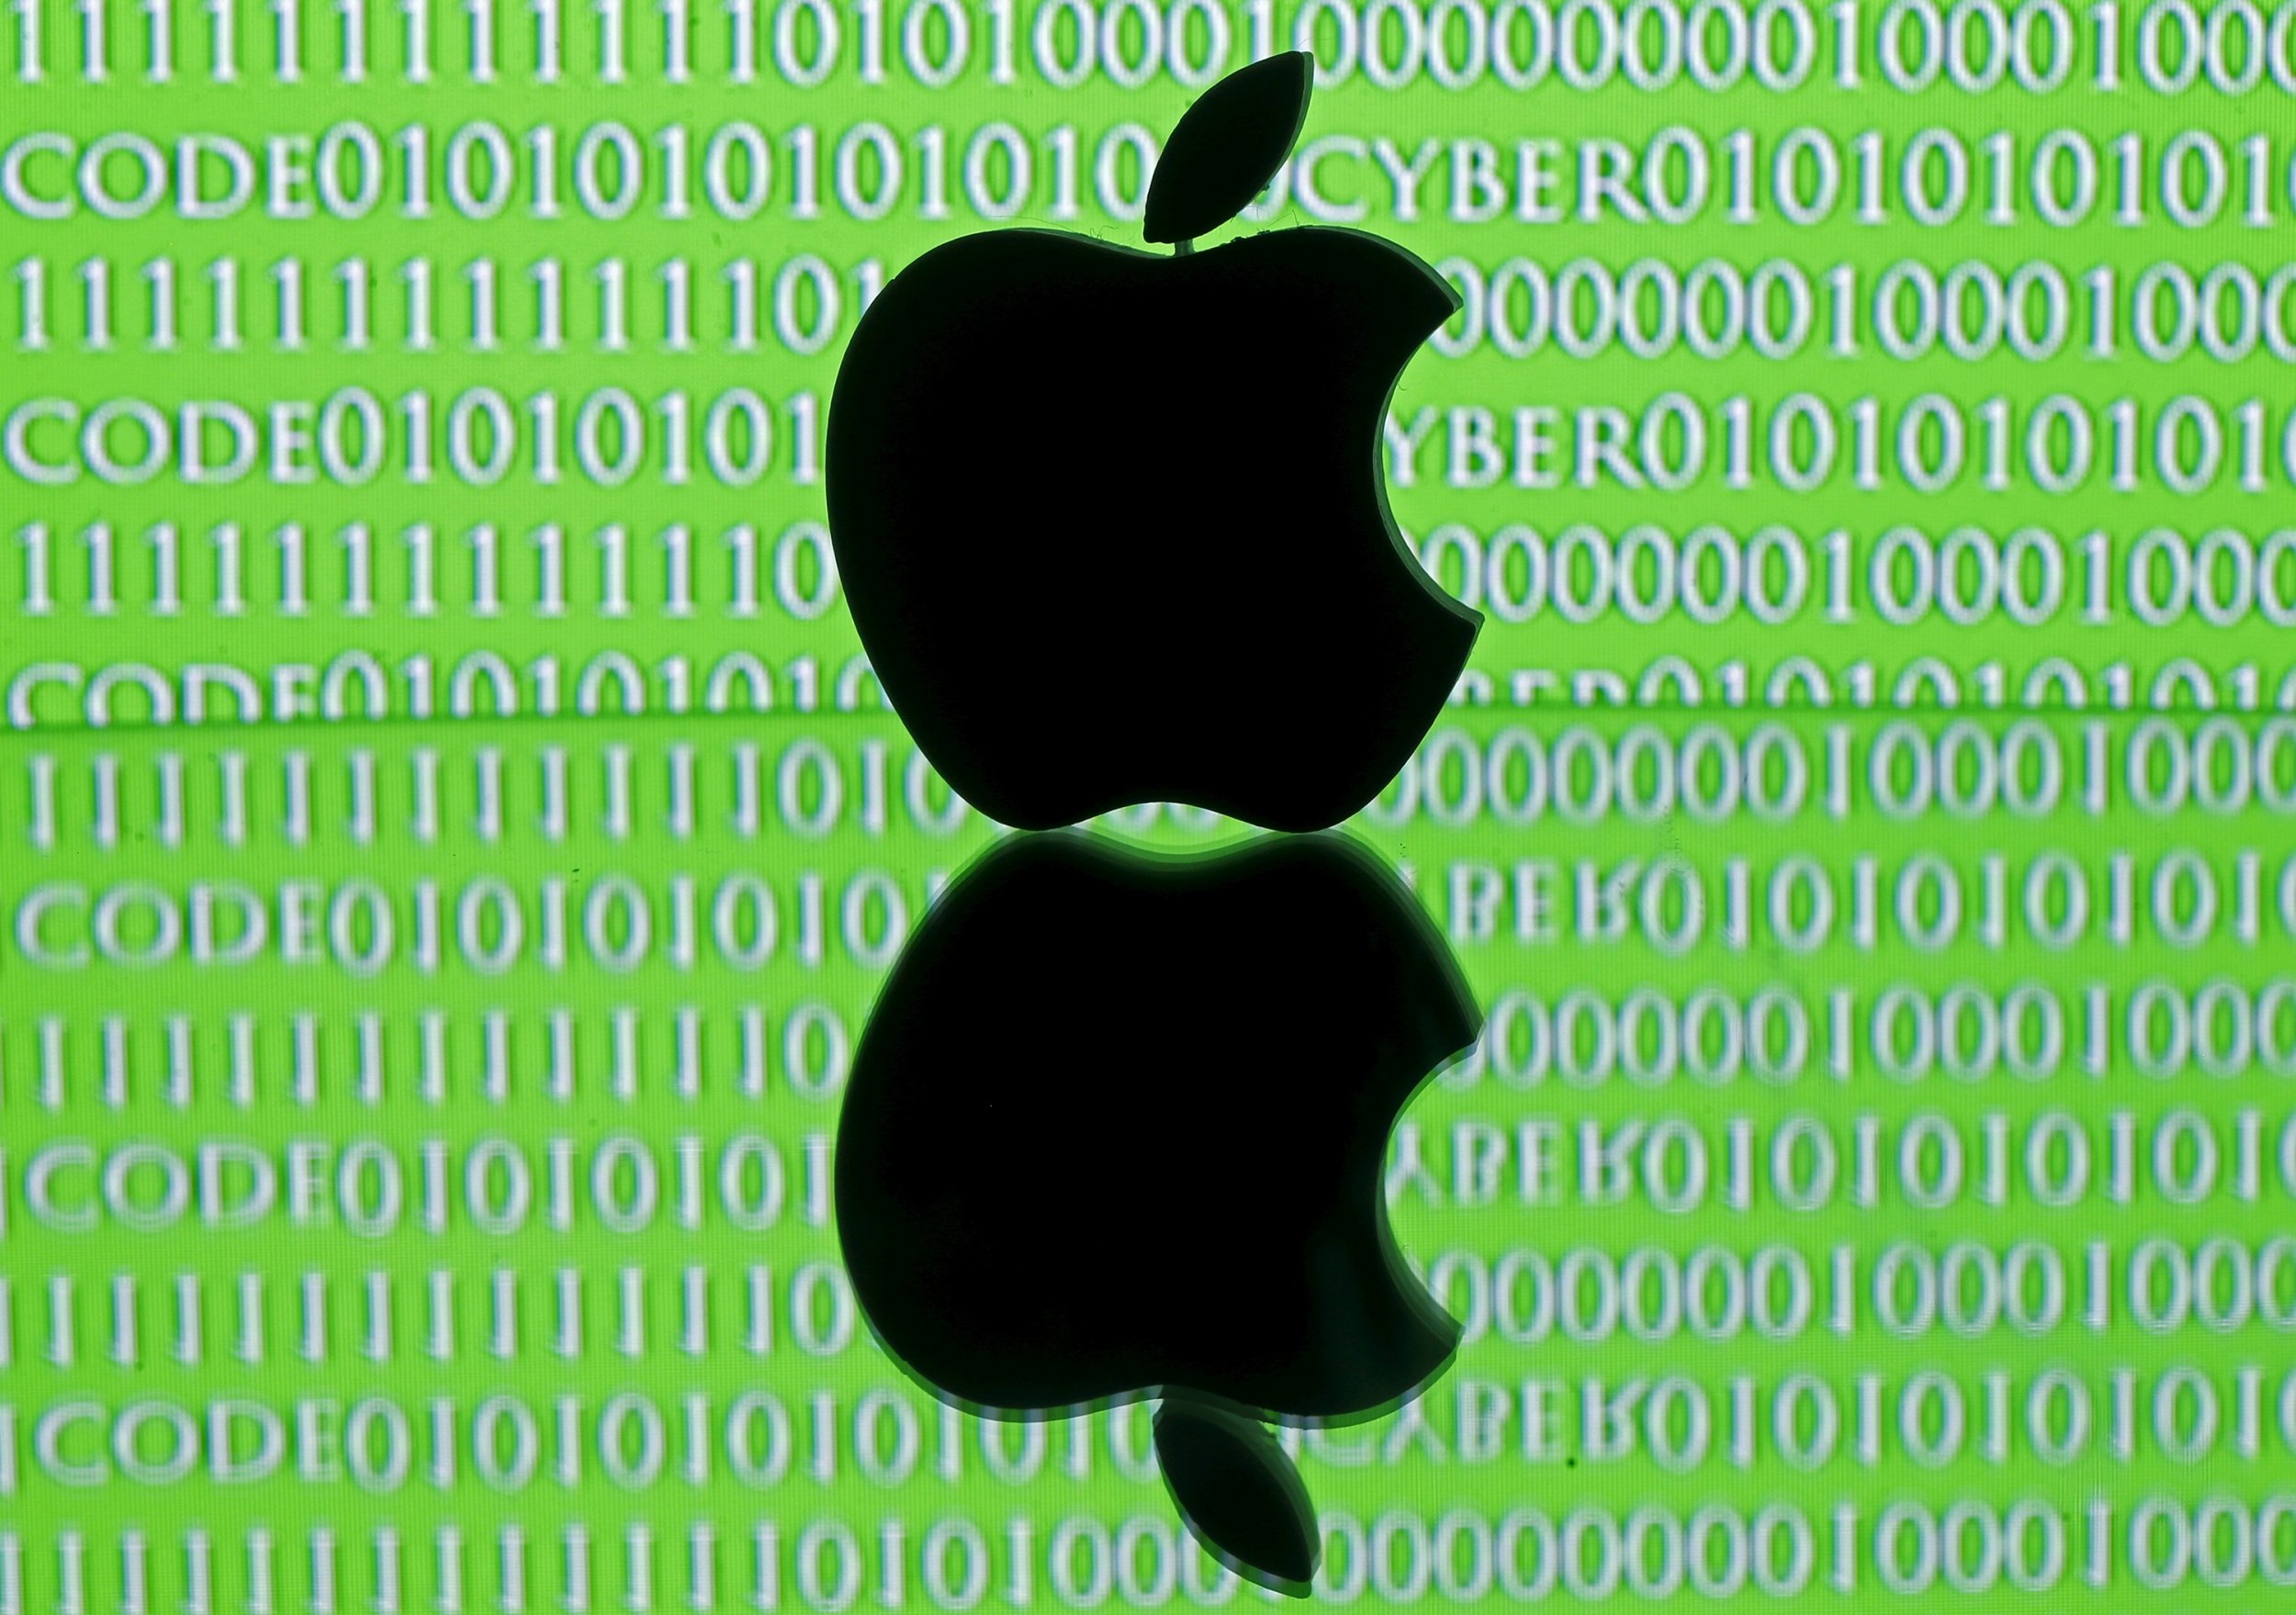 Apple iphone san bernardino cellebrite israel encryption